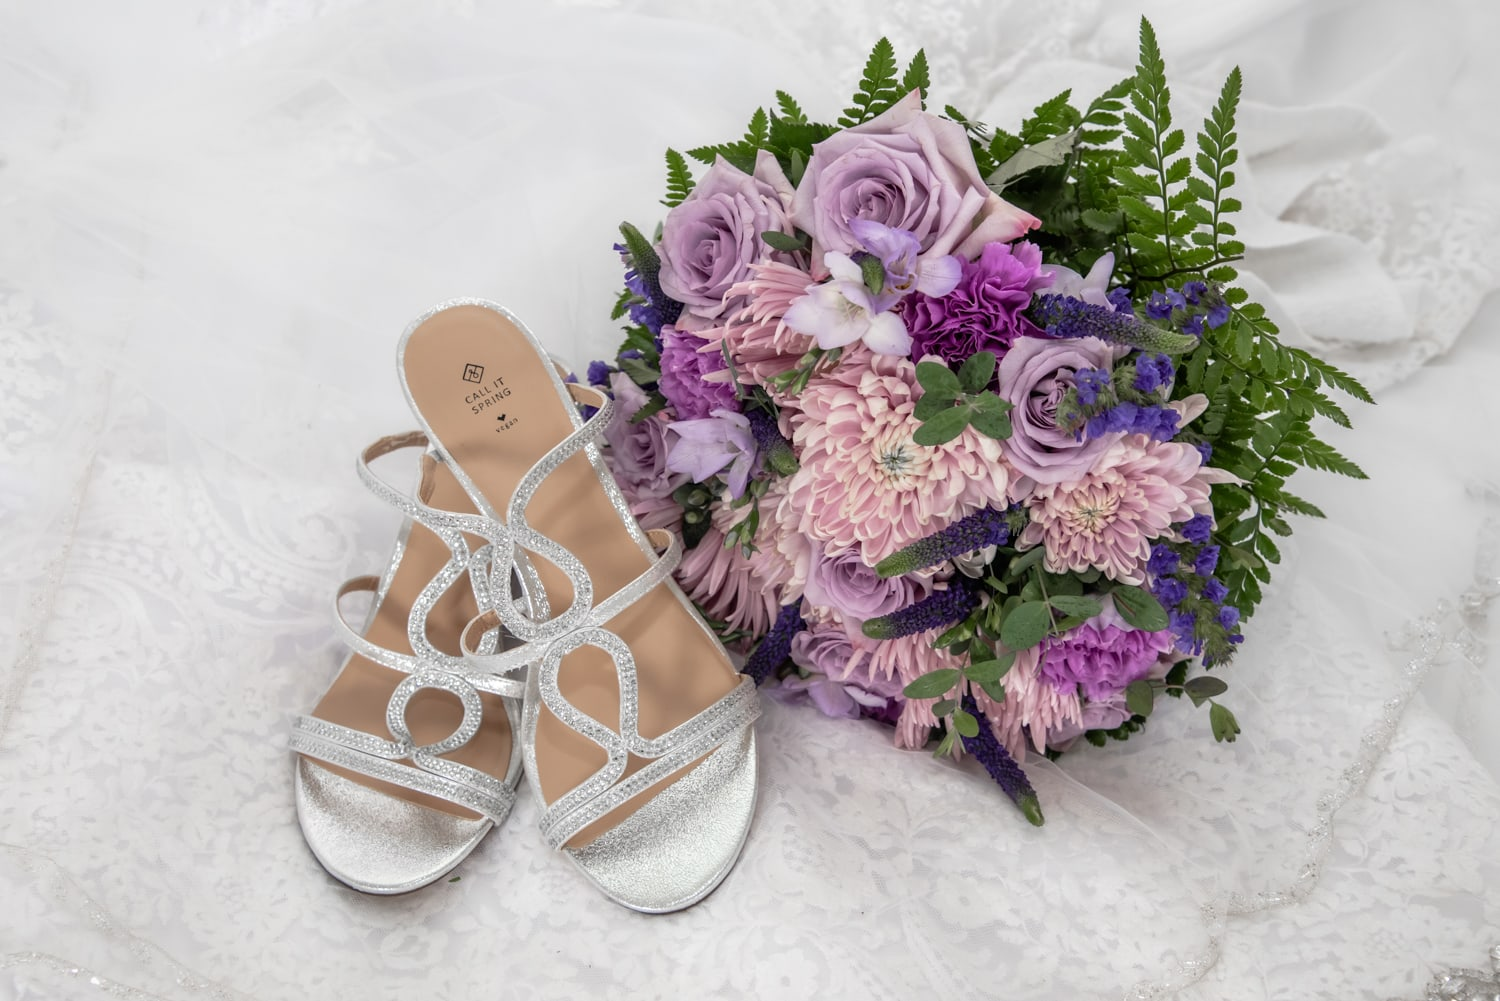 halifax ns wedding photographer, halifax wedding photographers, halifax engagement photographer, engaged, sandra adamson studios, white point beach resort, oceanside, wedding shoes, wedding bouquet, wedding gown, wedding veil